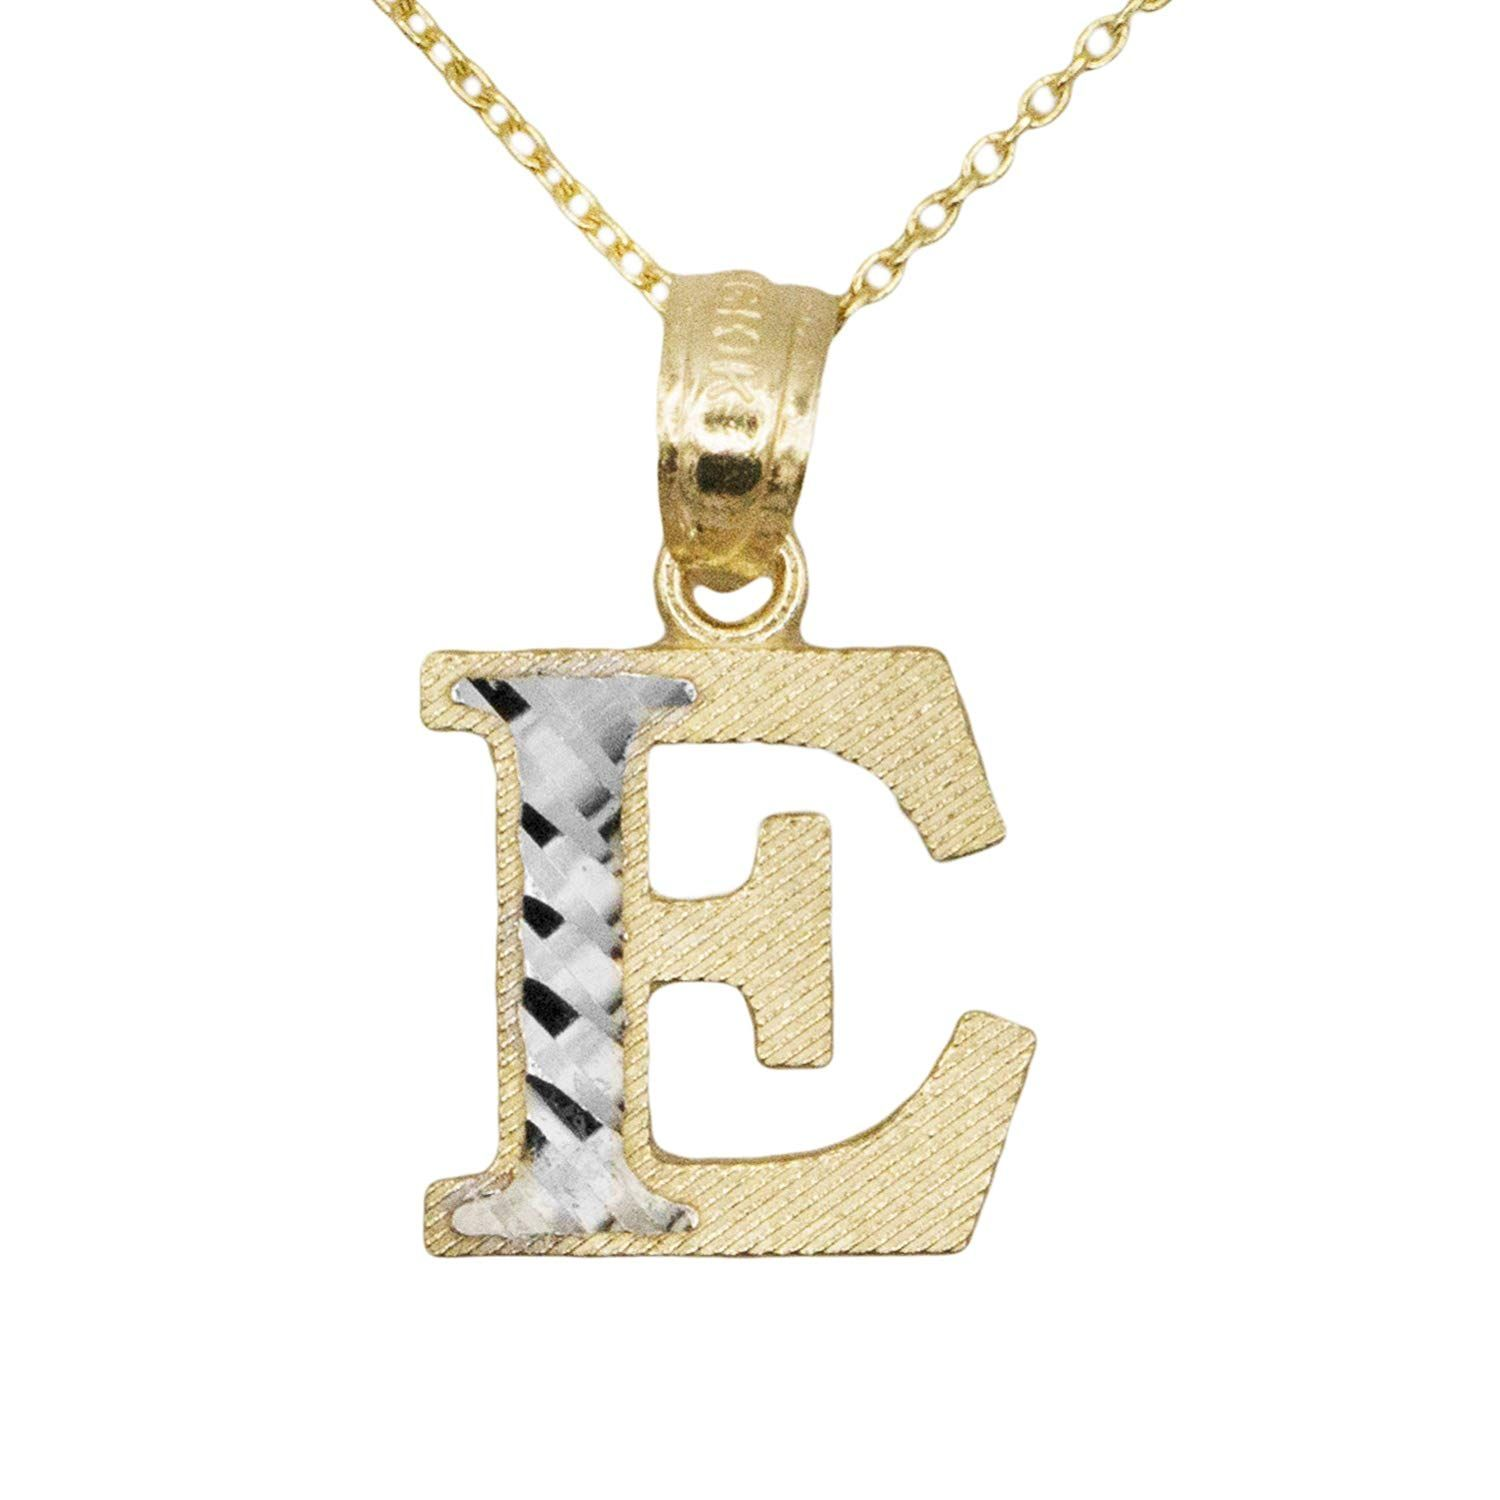 Ice On Fire Jewelry 10k Two Tone Yellow And White Gold Letter E Initial Name Pendant Necklace Thanks A Lot For Having Vie Fire Jewelry Gold Letters Pendant